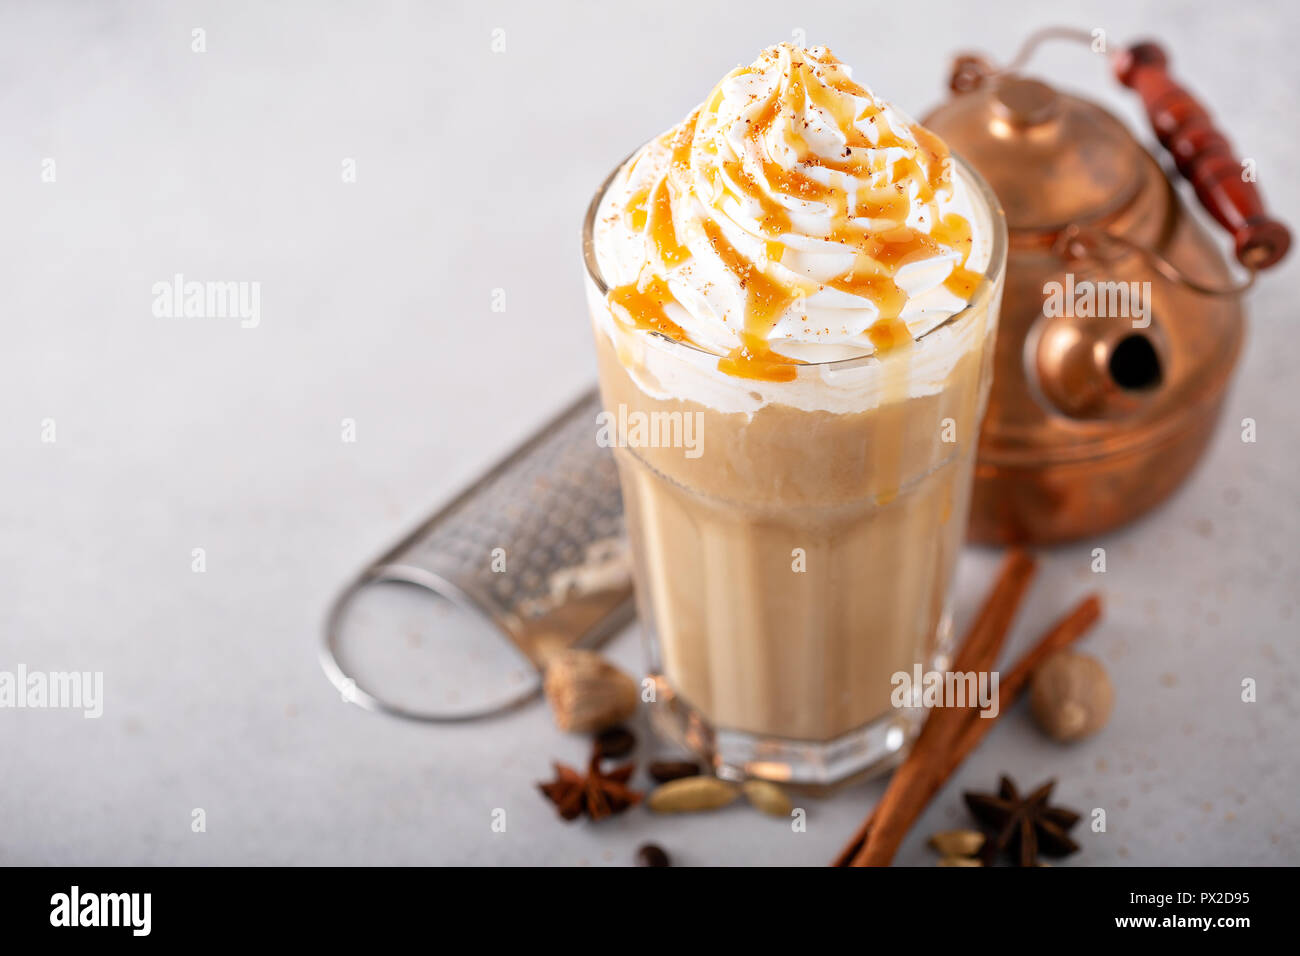 Spiced iced chai latte with whipped cream, seasonal fall drink Stock Photo